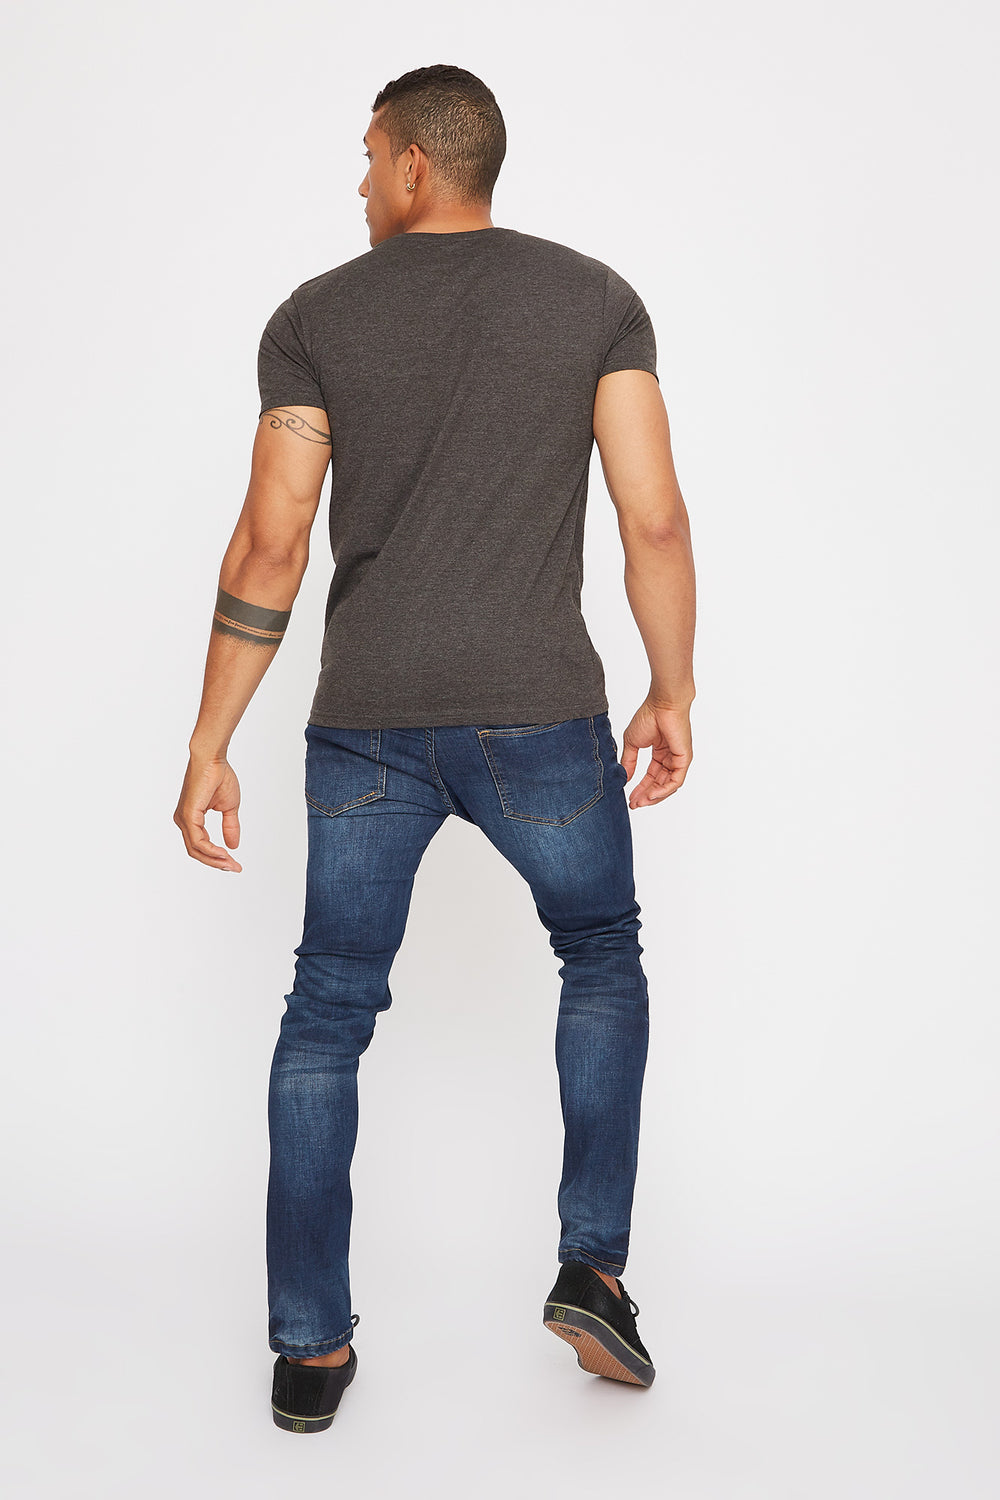 Basic Henley T-Shirt Charcoal